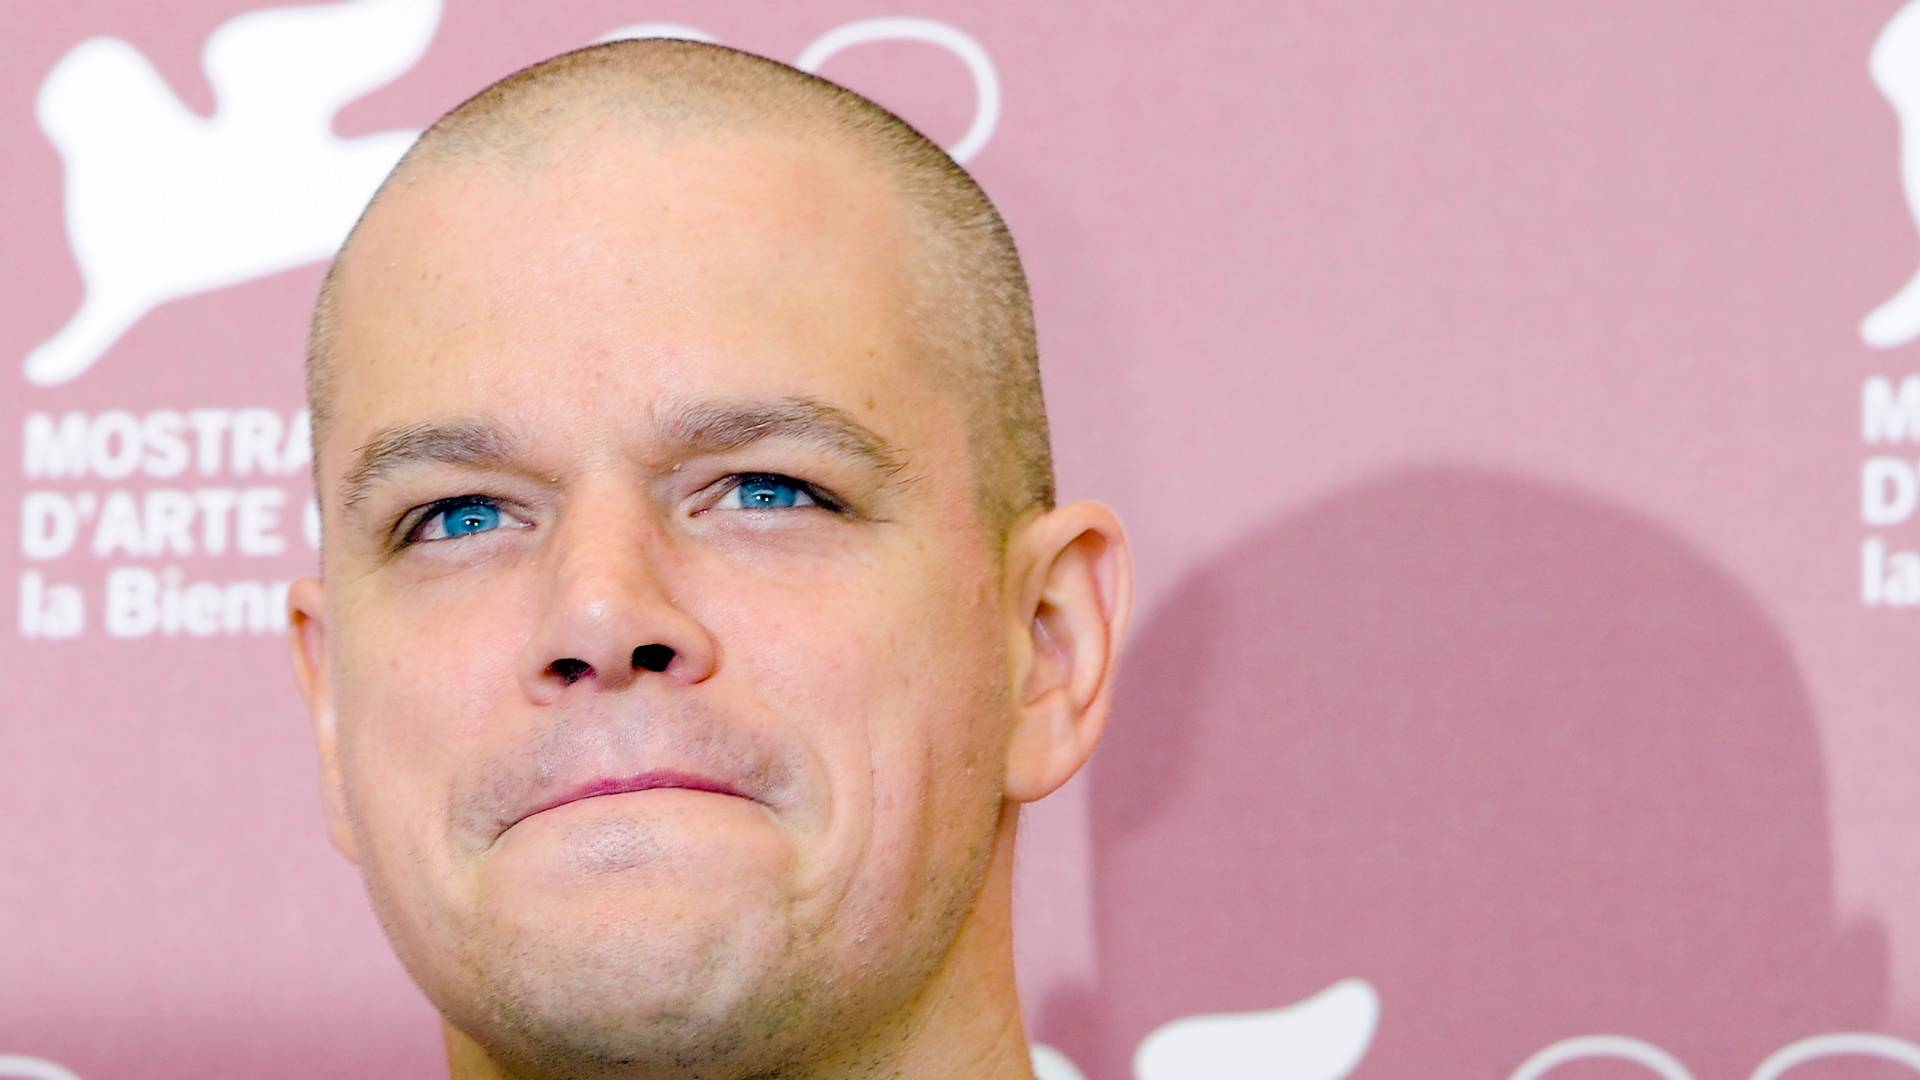 O ator Matt Damon posa para fotos durante a divulgao de 